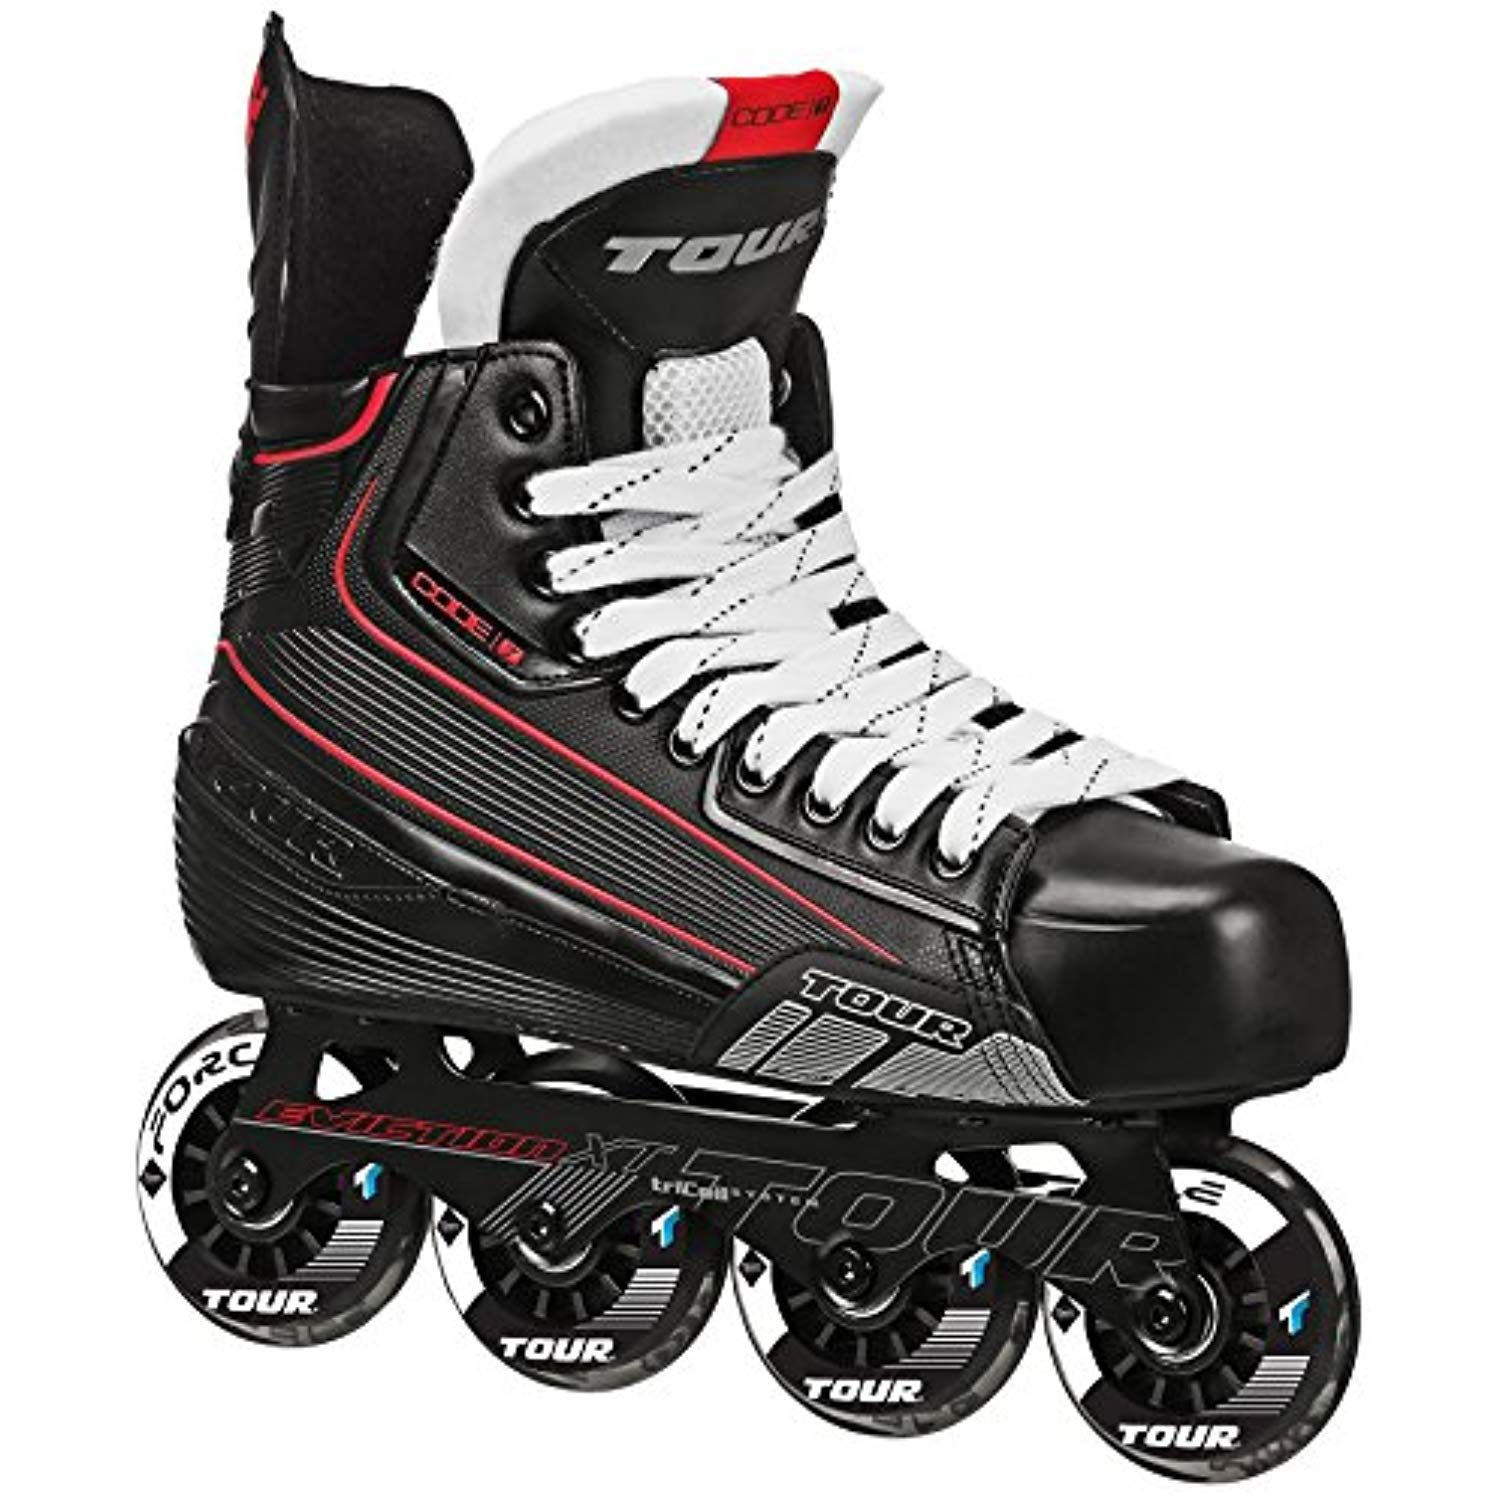 Tour Hockey Code 7 Senior Inline Hockey Skates You Can Find More Details By Visiting The Image Link Thi Inline Hockey Roller Hockey Skates Inline Skating